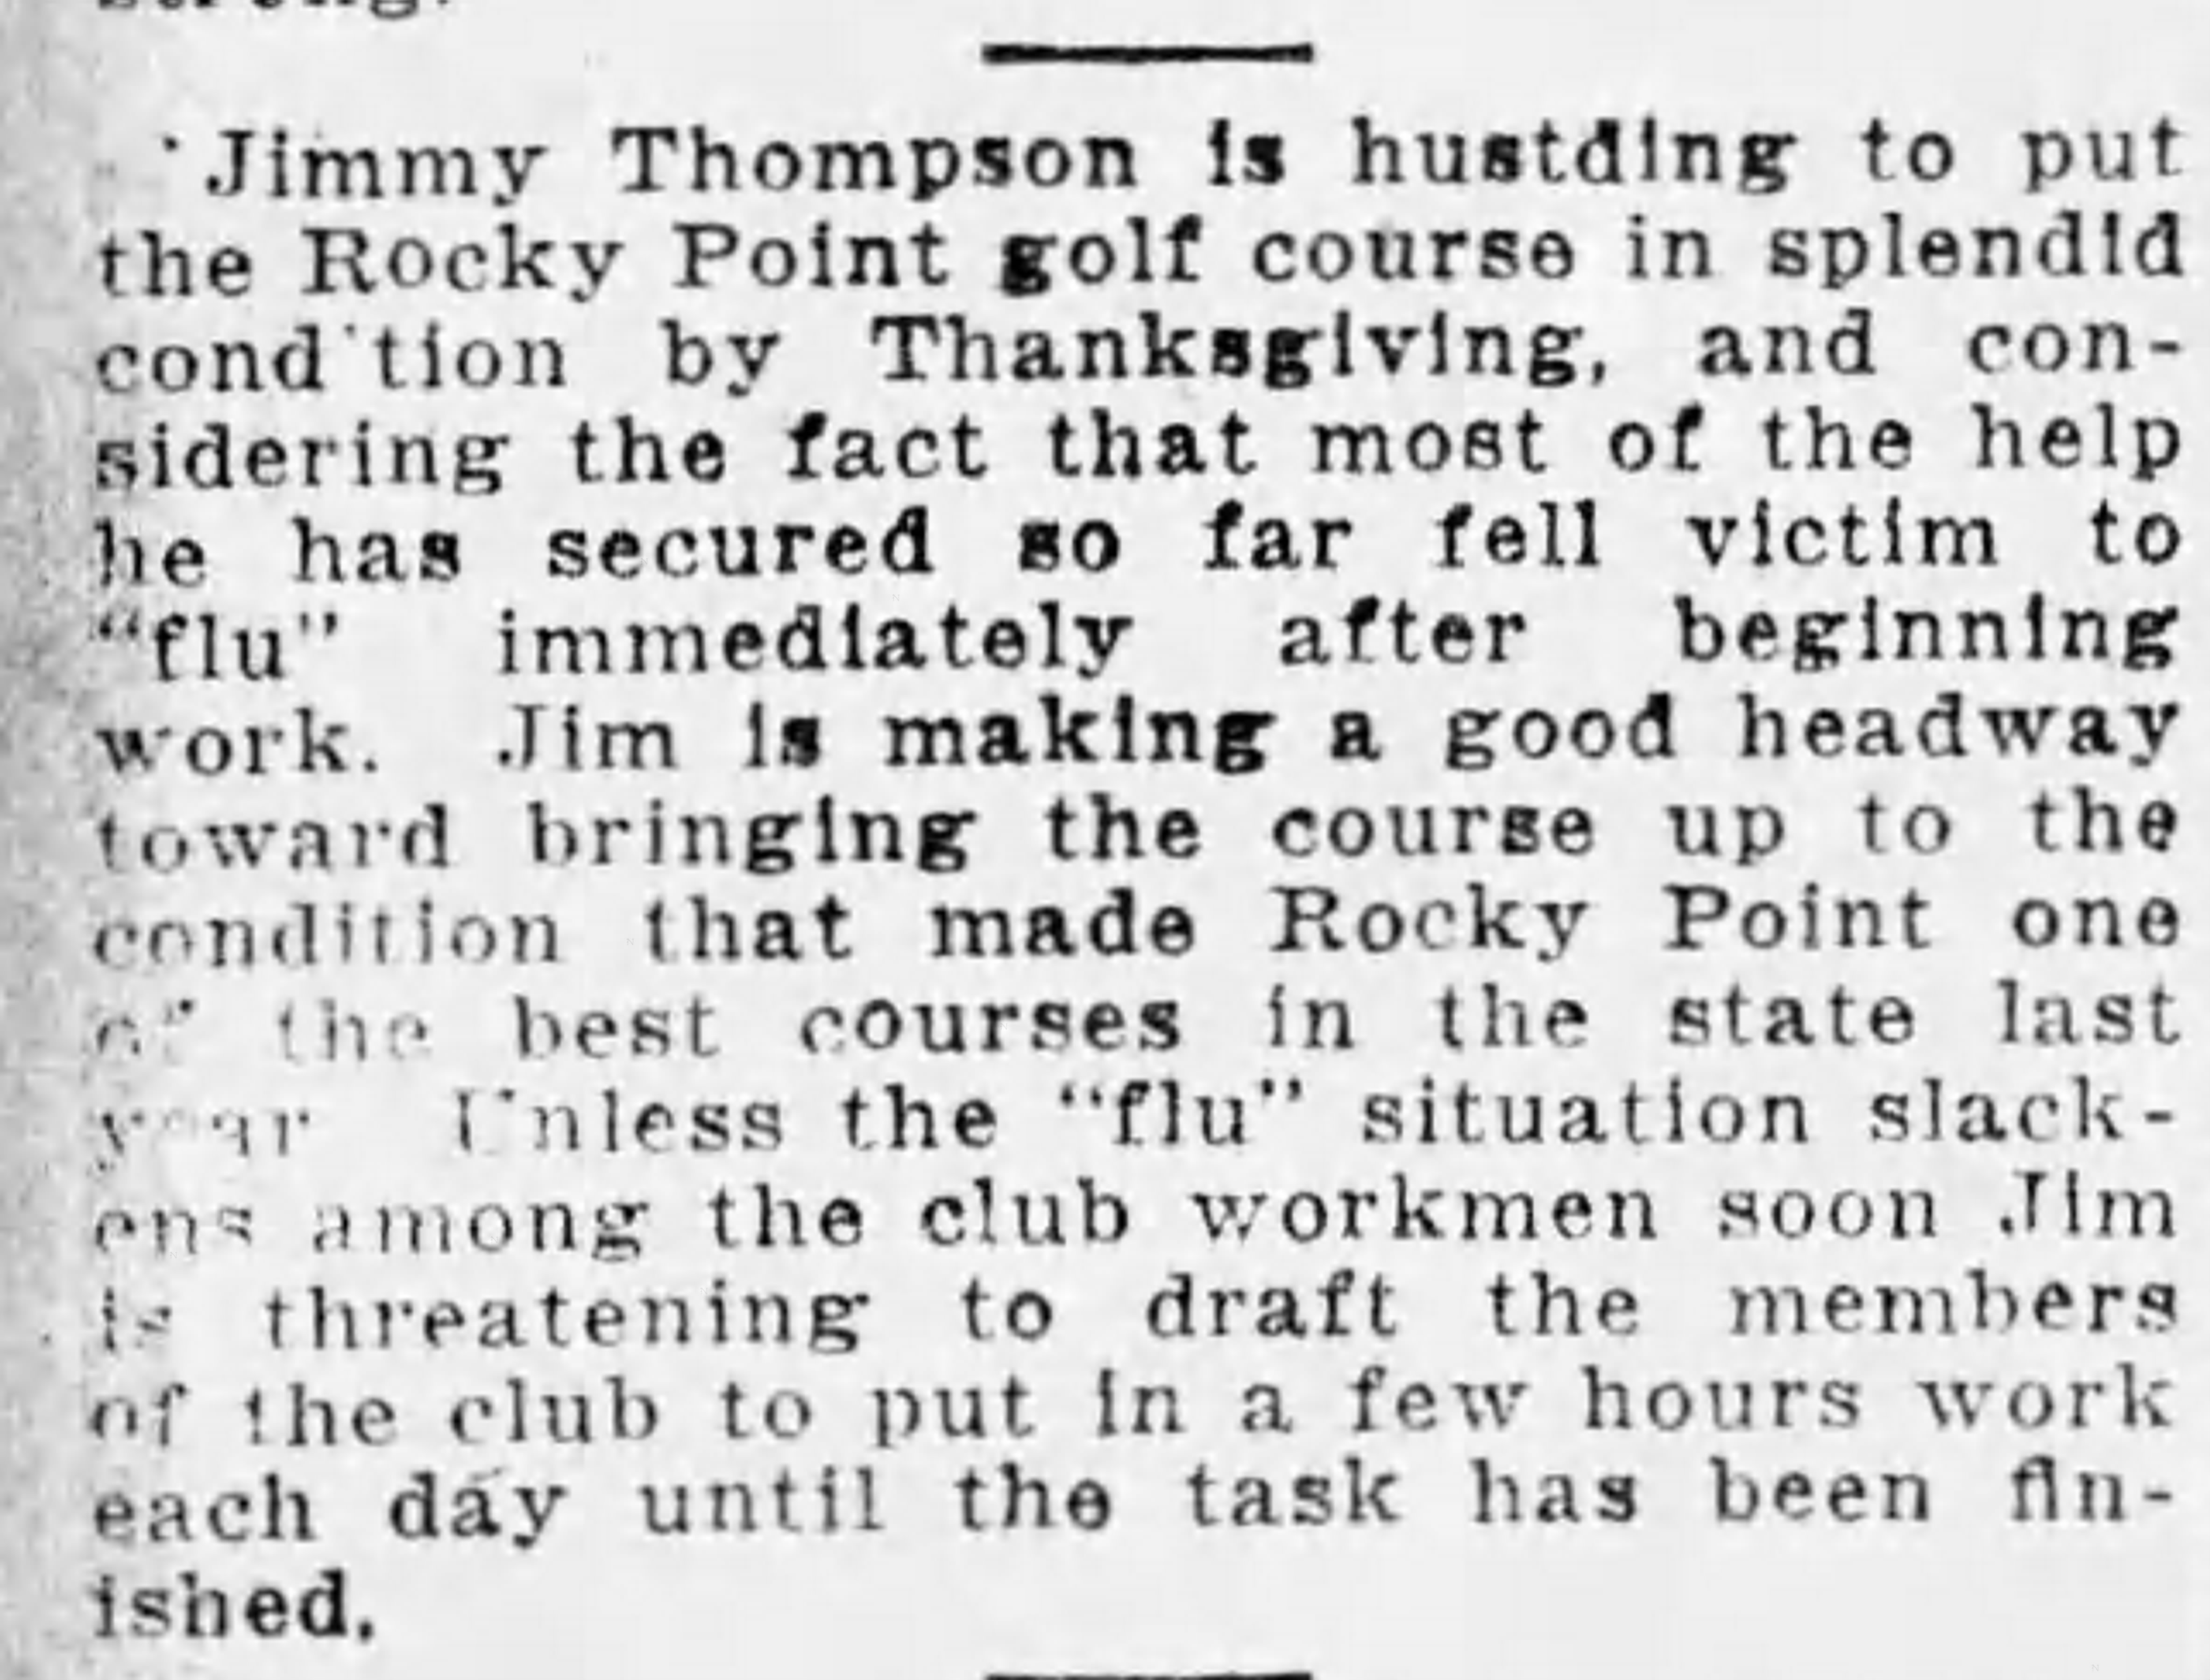 Rocky Point Golf Course Improvements Planned - Nov 1, 1918 Tampa Times